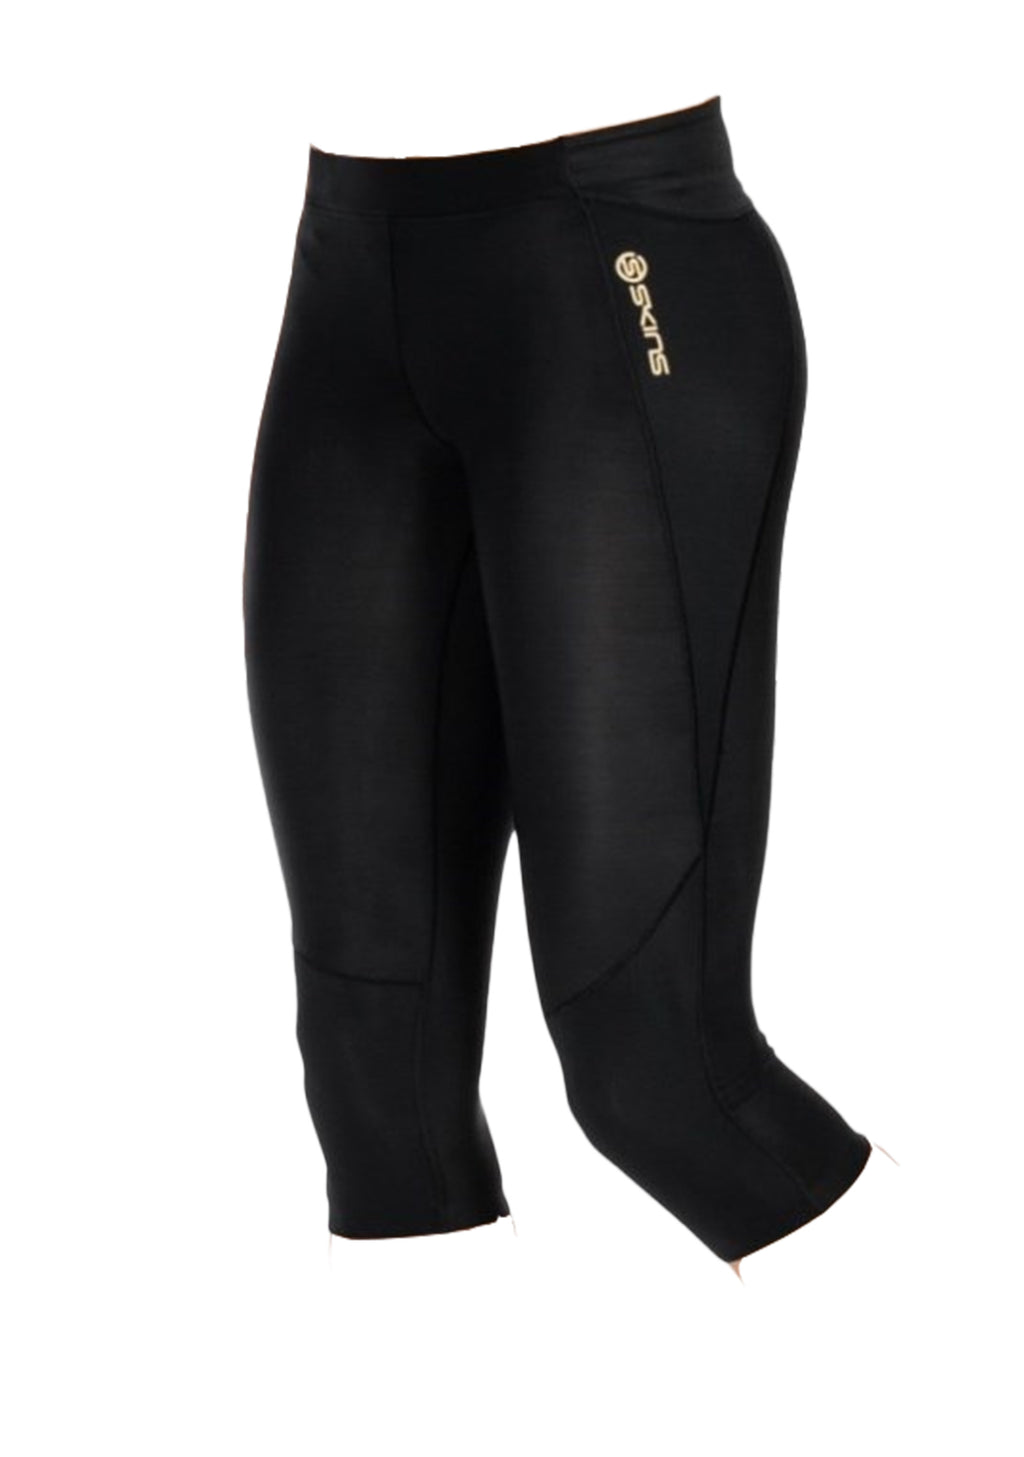 SKINS WOMENS A400 3/4 TIGHT BLACK <BR> B33001020